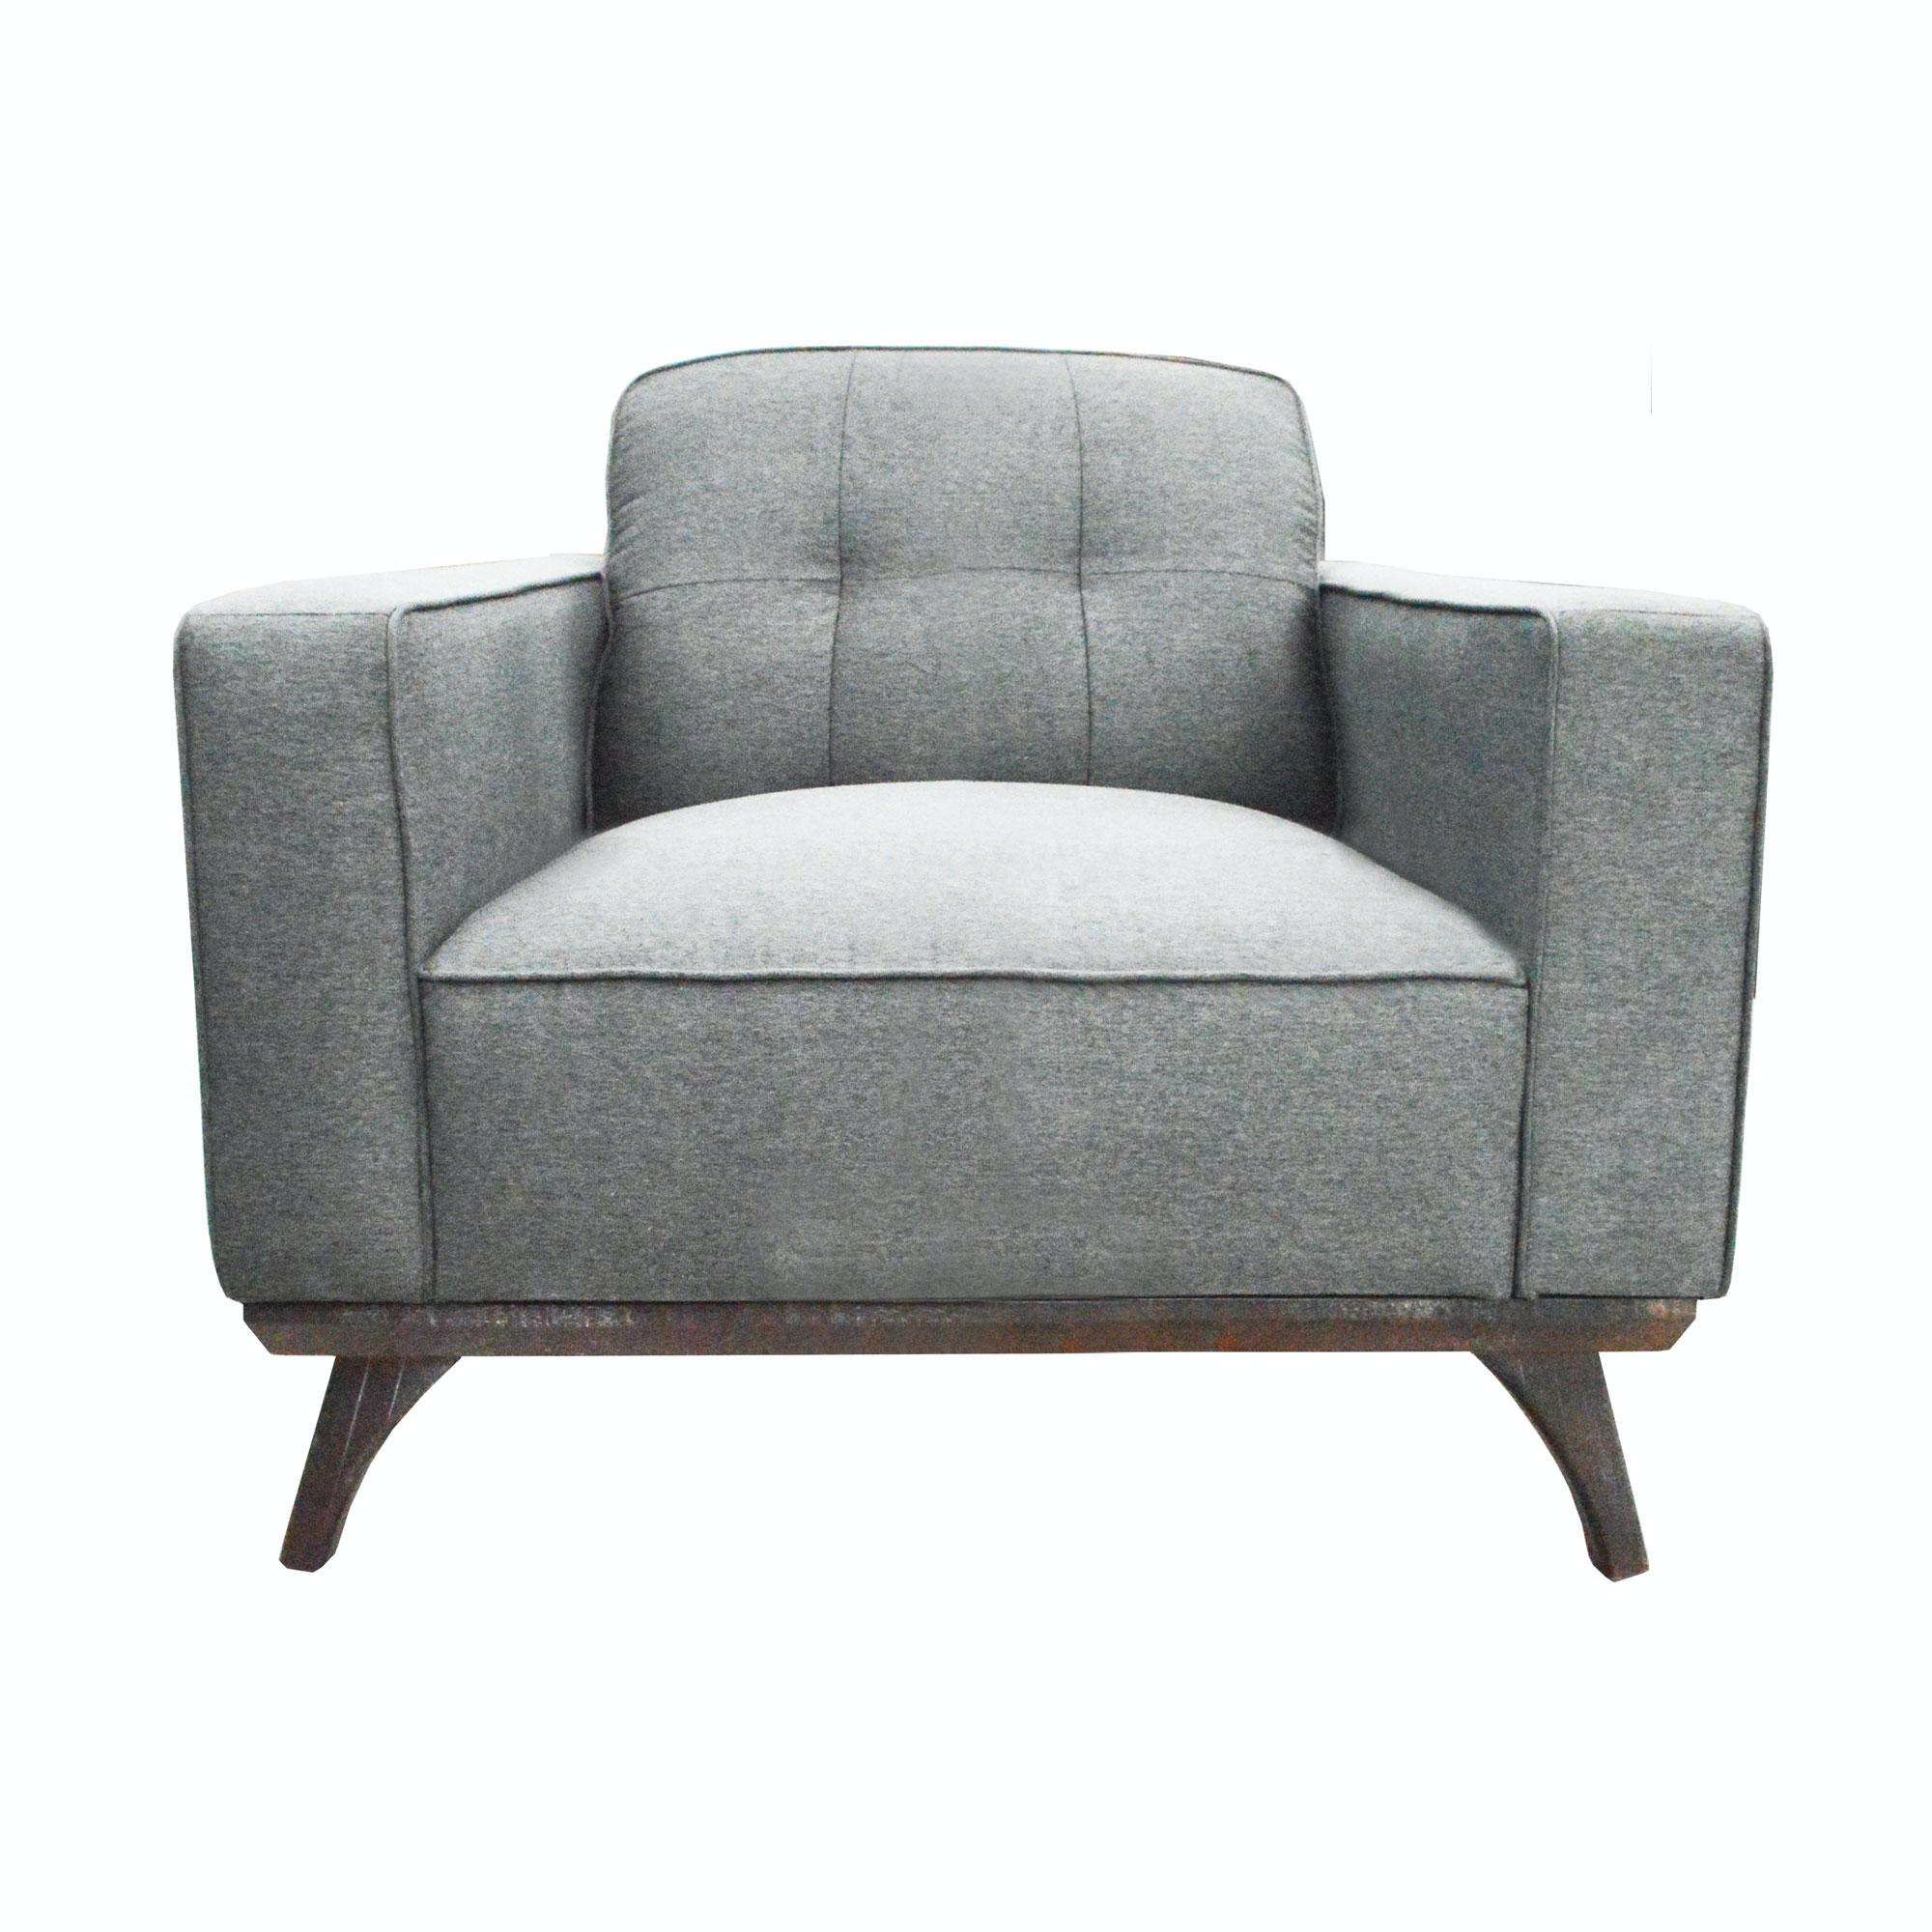 Modena Chair - Pewter